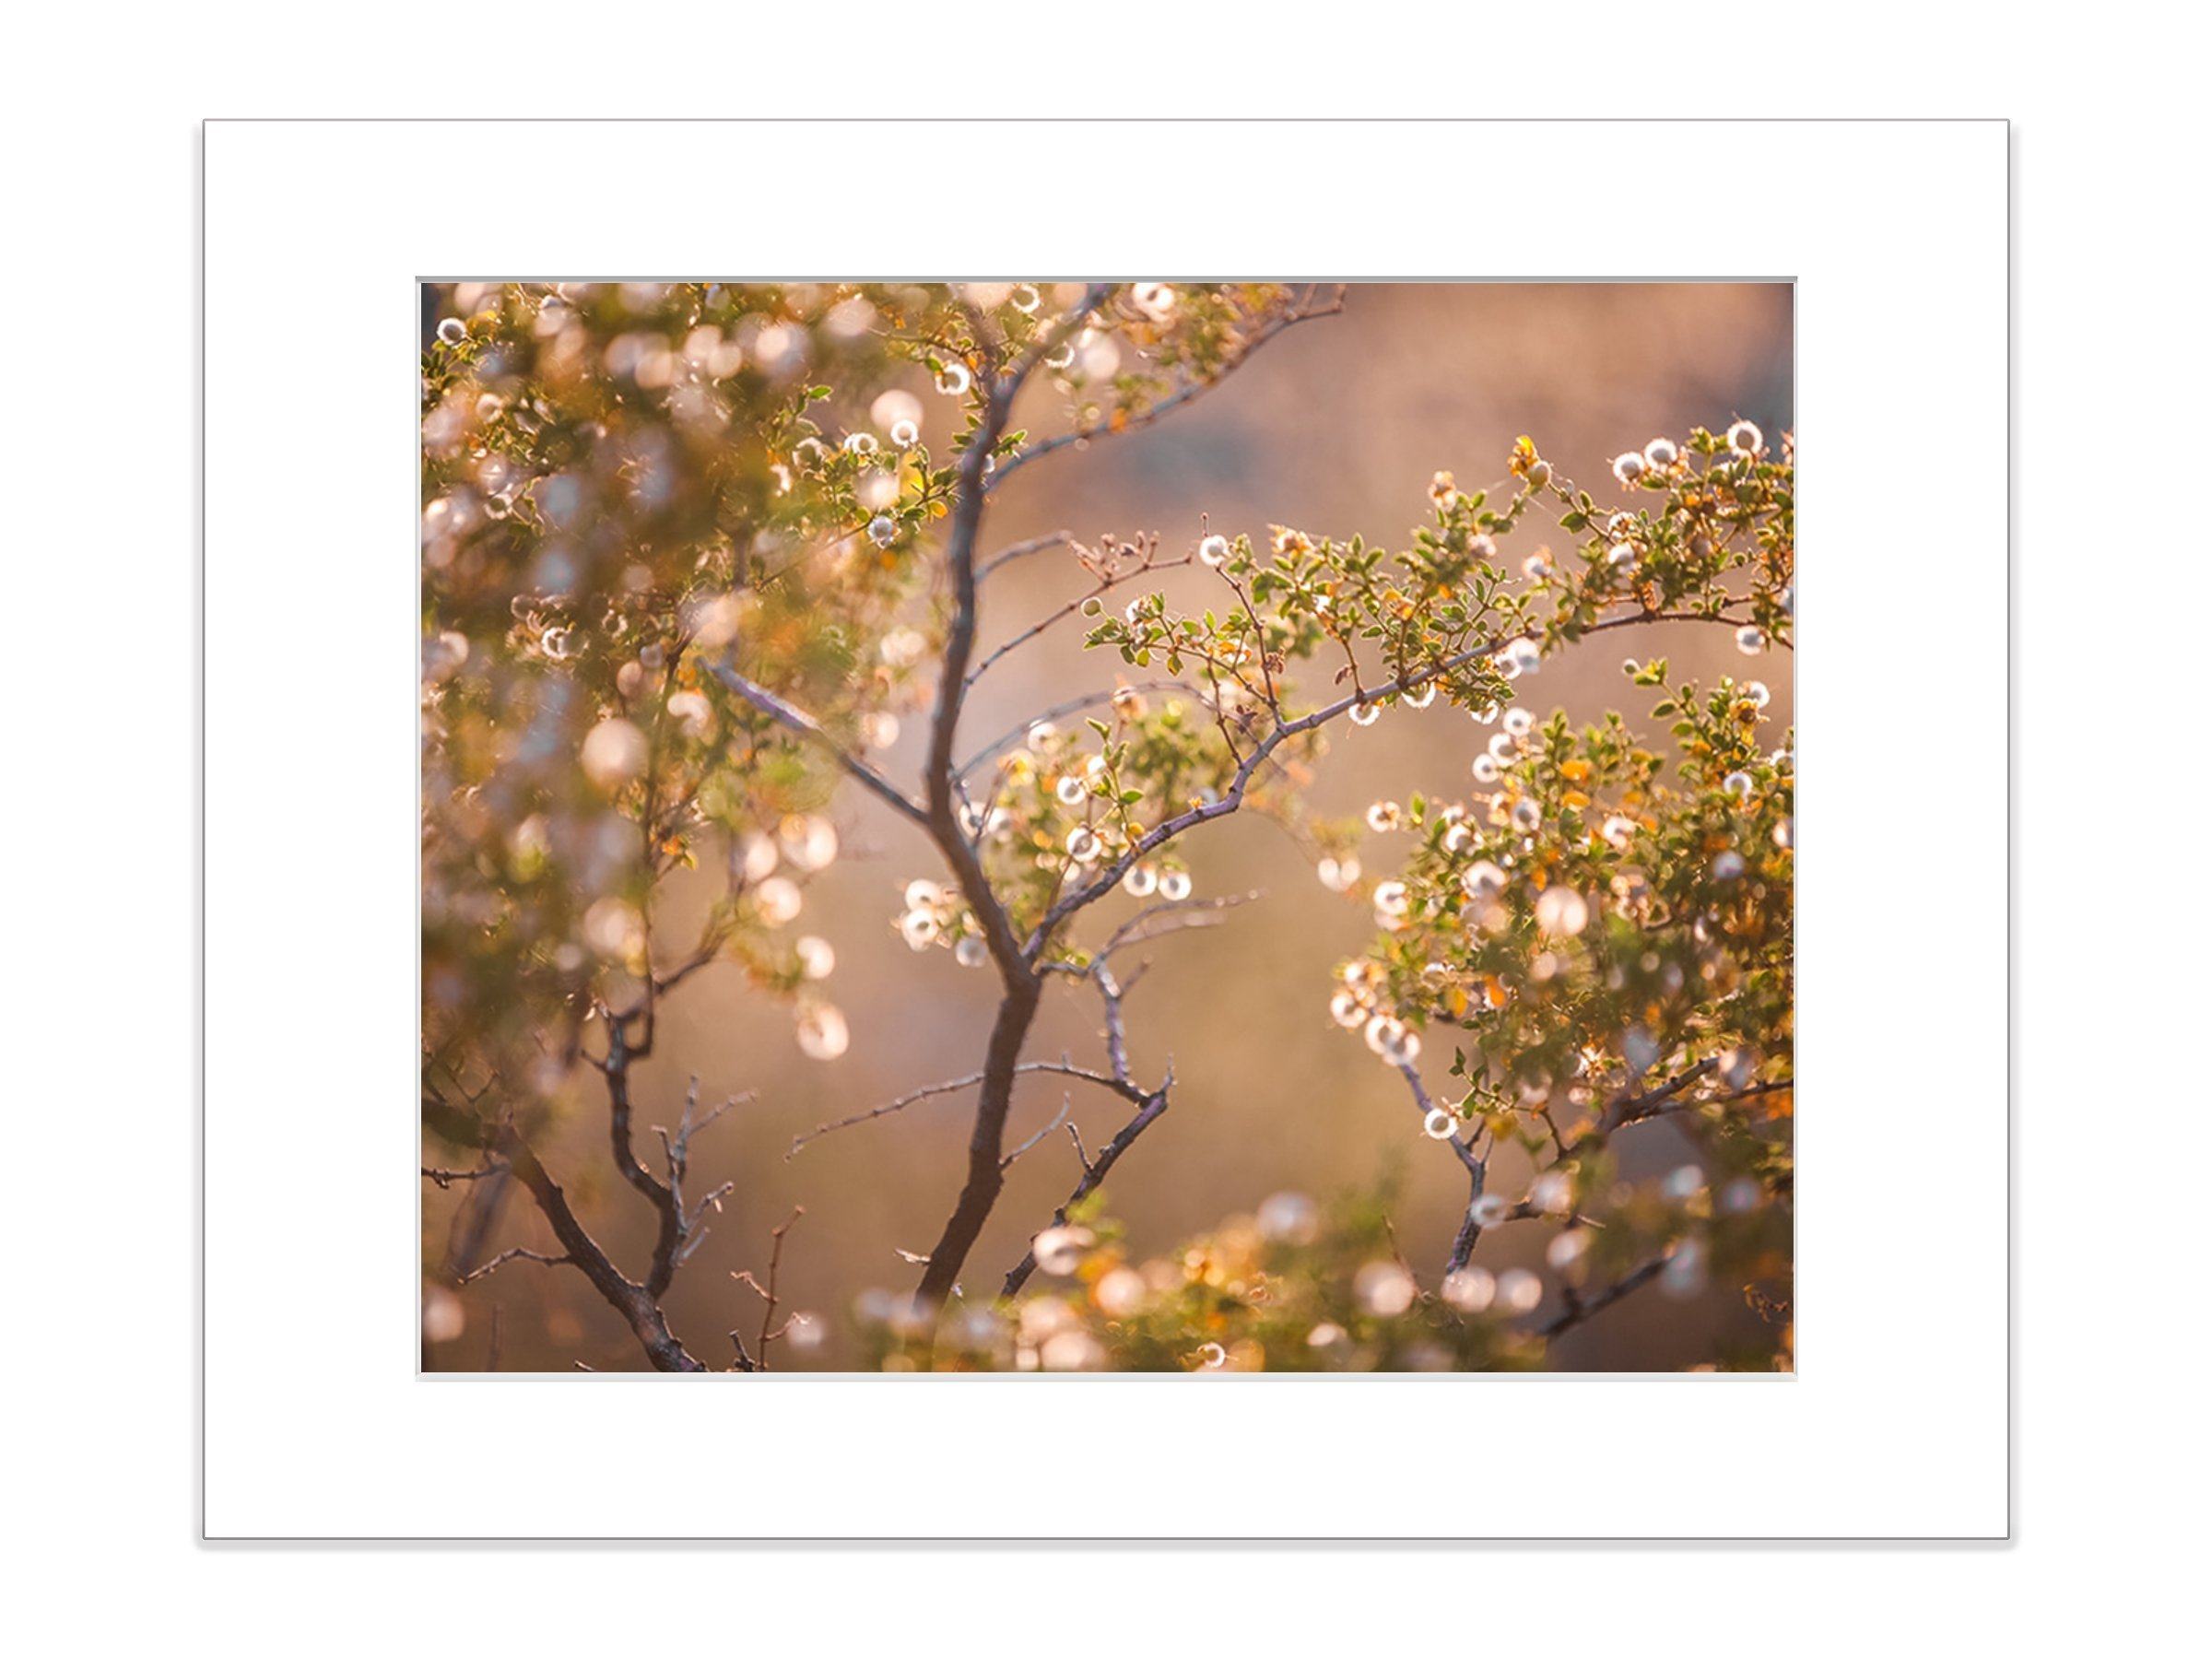 Abstract Desert Flower Yellow Bloom Botanical Nature Photo 5x7 Inch Matted Print